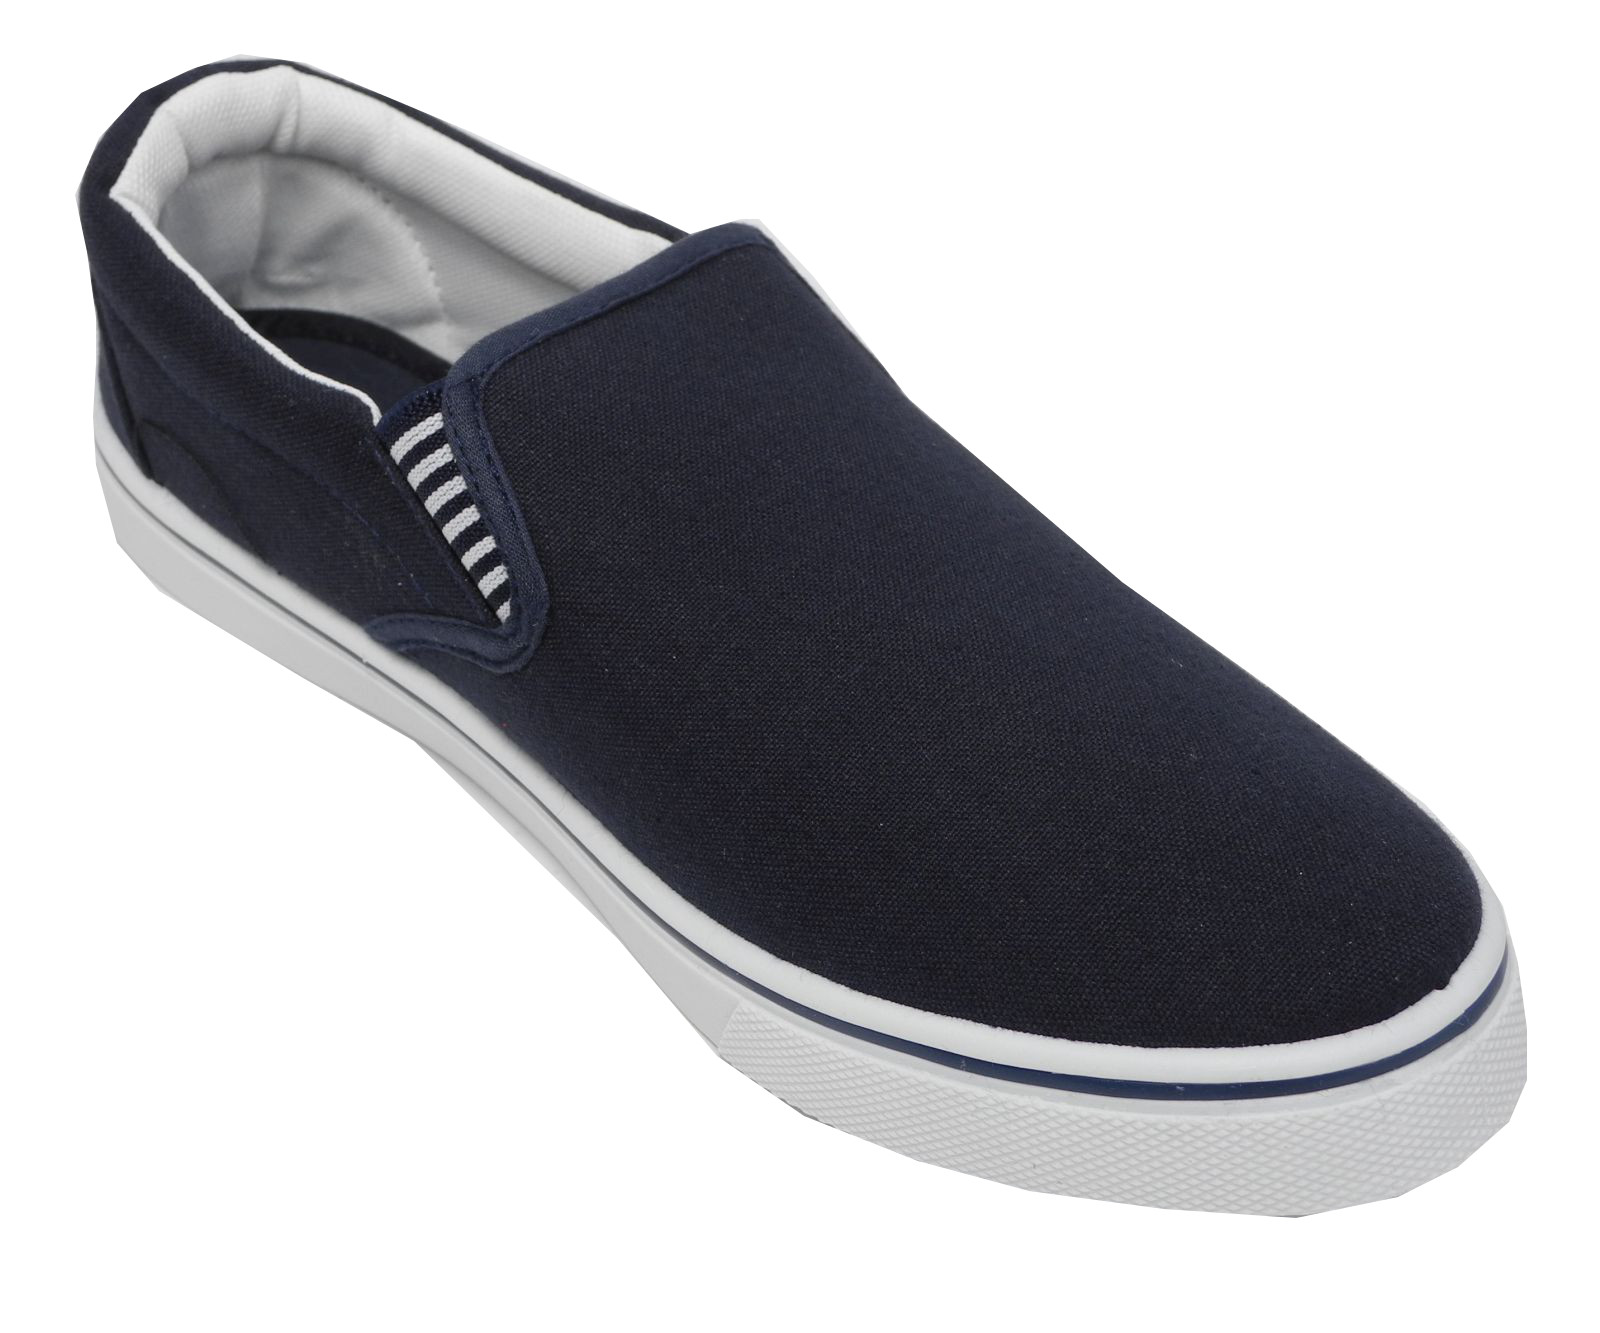 Mens Boat And Deck Shoes